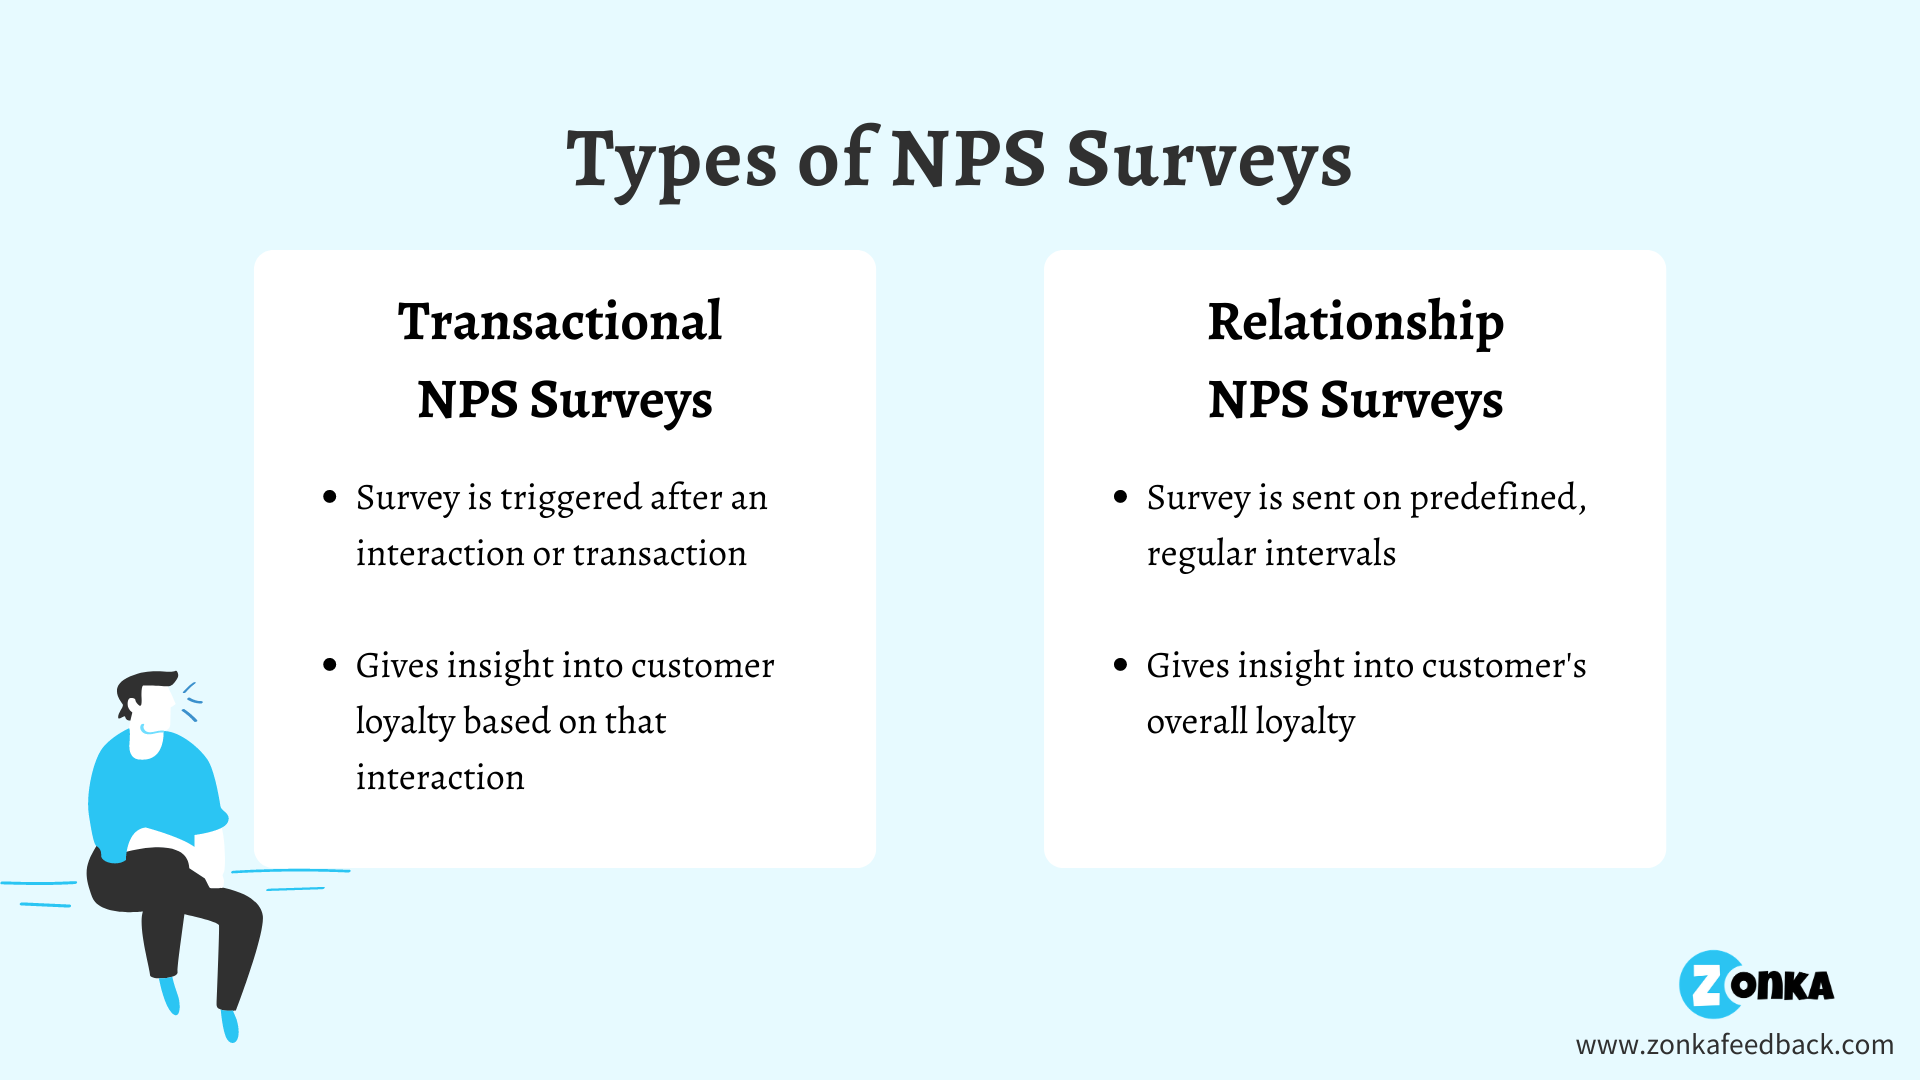 Difference between Transactional and Relationship NPS Survey